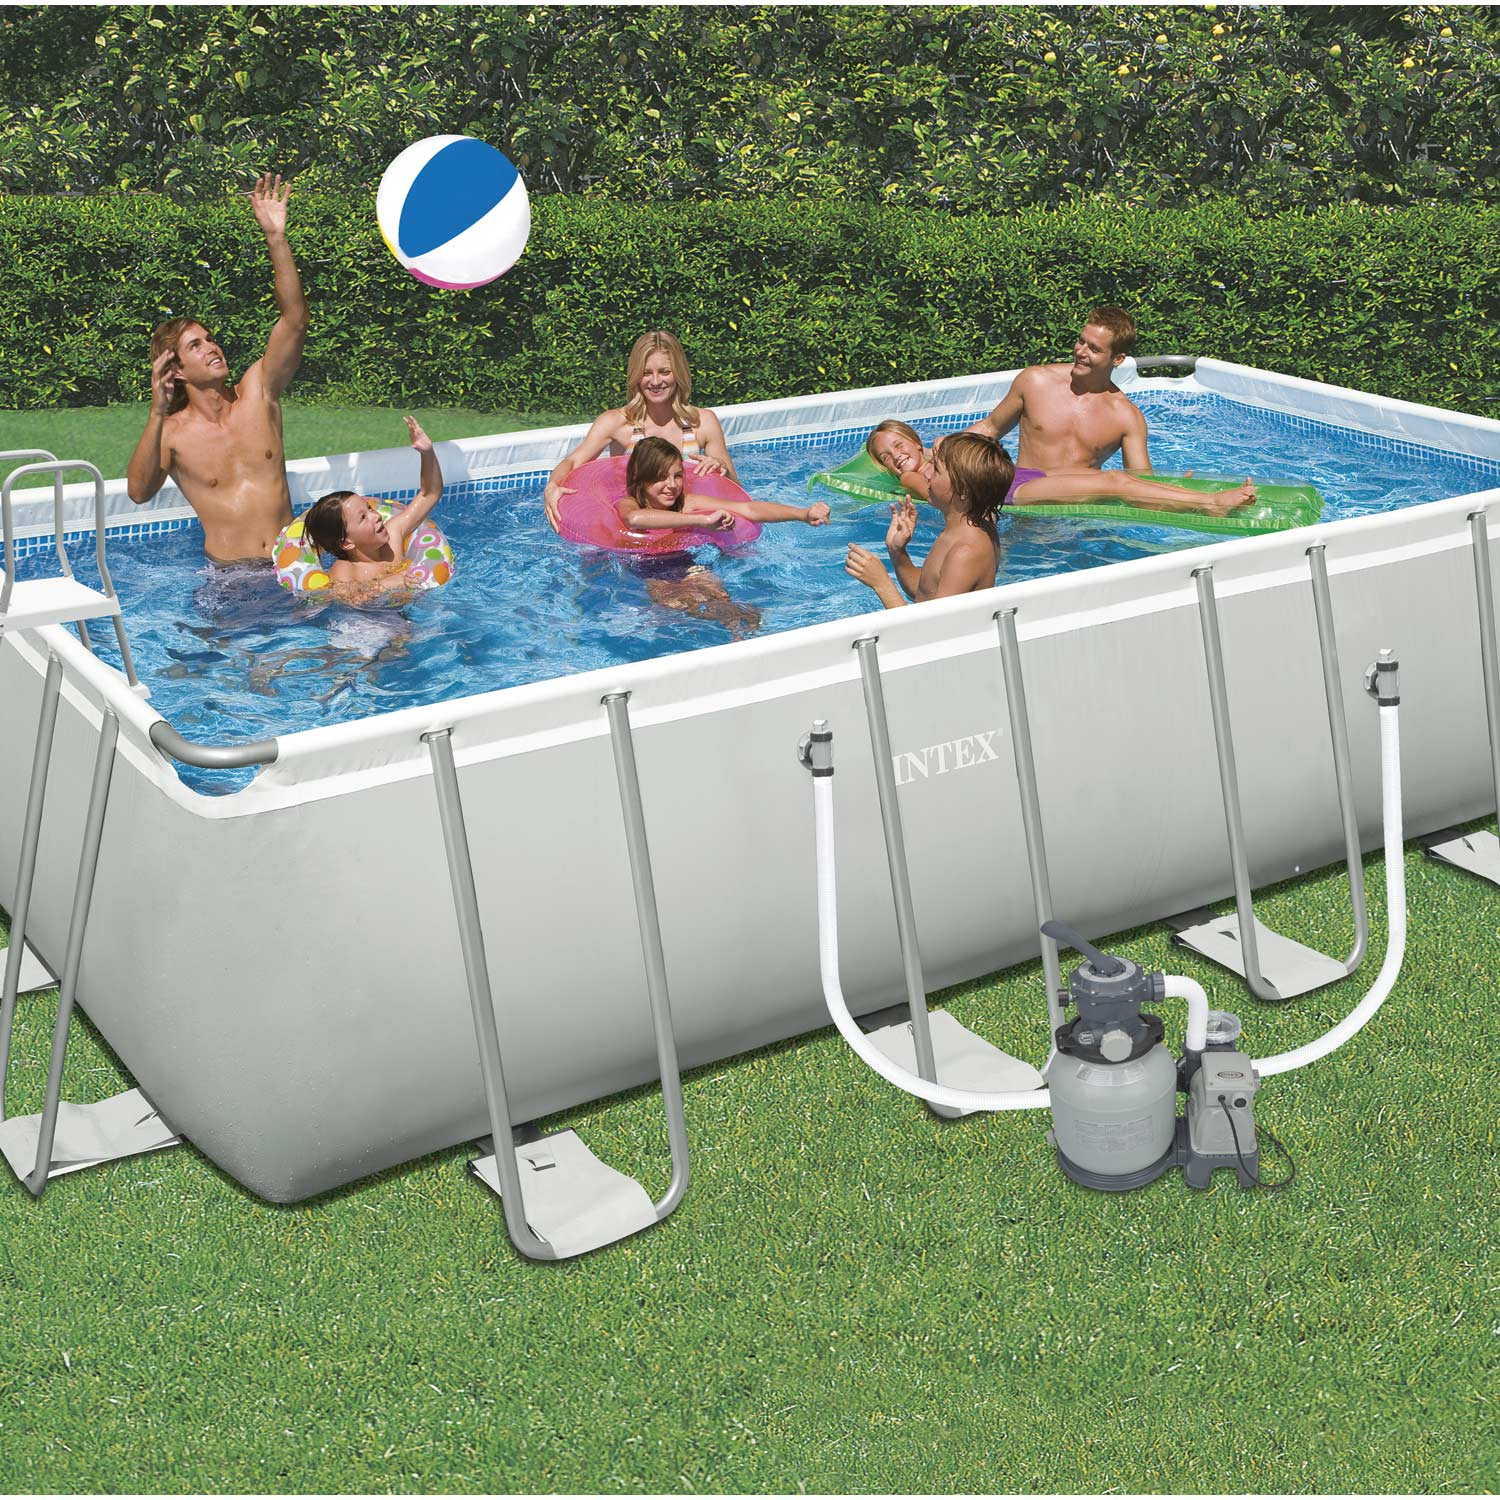 Piscine hors sol autoportante tubulaire ultra silver intex for Piscine hors sol toulouse